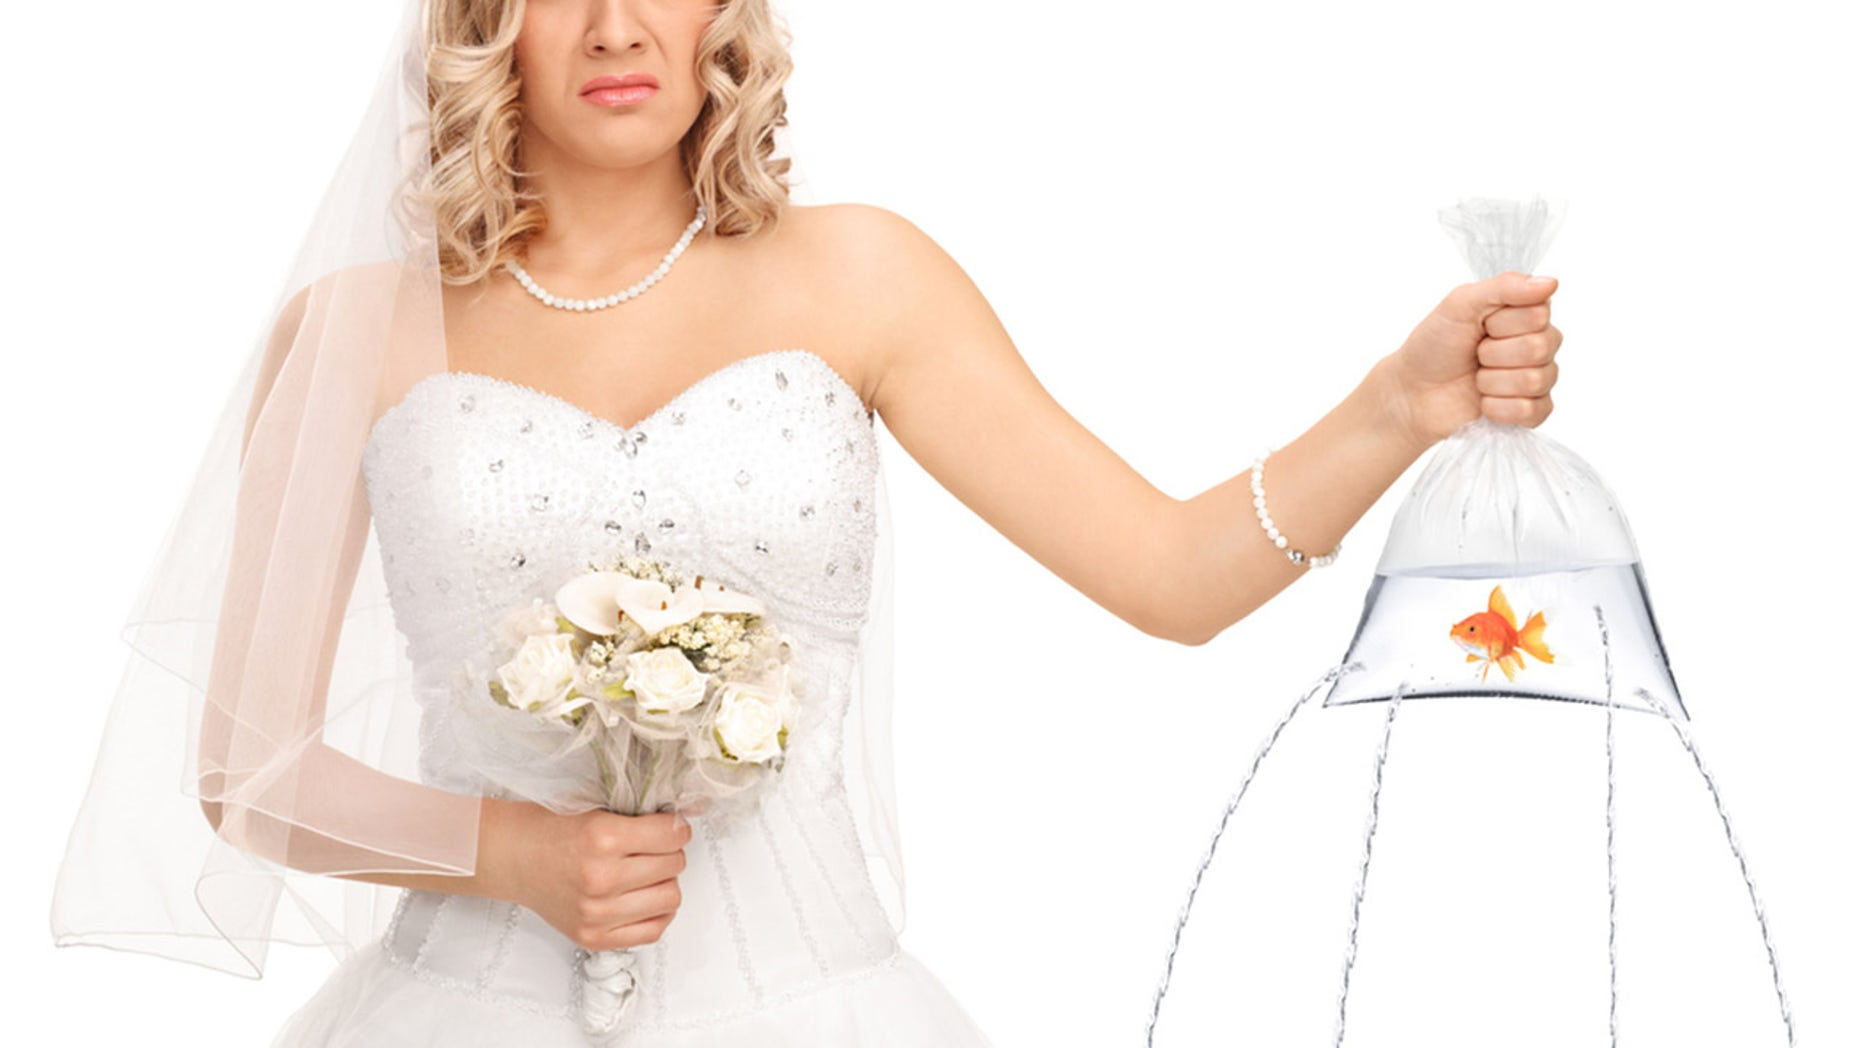 Sad bride holding a goldfish in a cosmetic bag with holes in it and a H2O leaking removed on white background